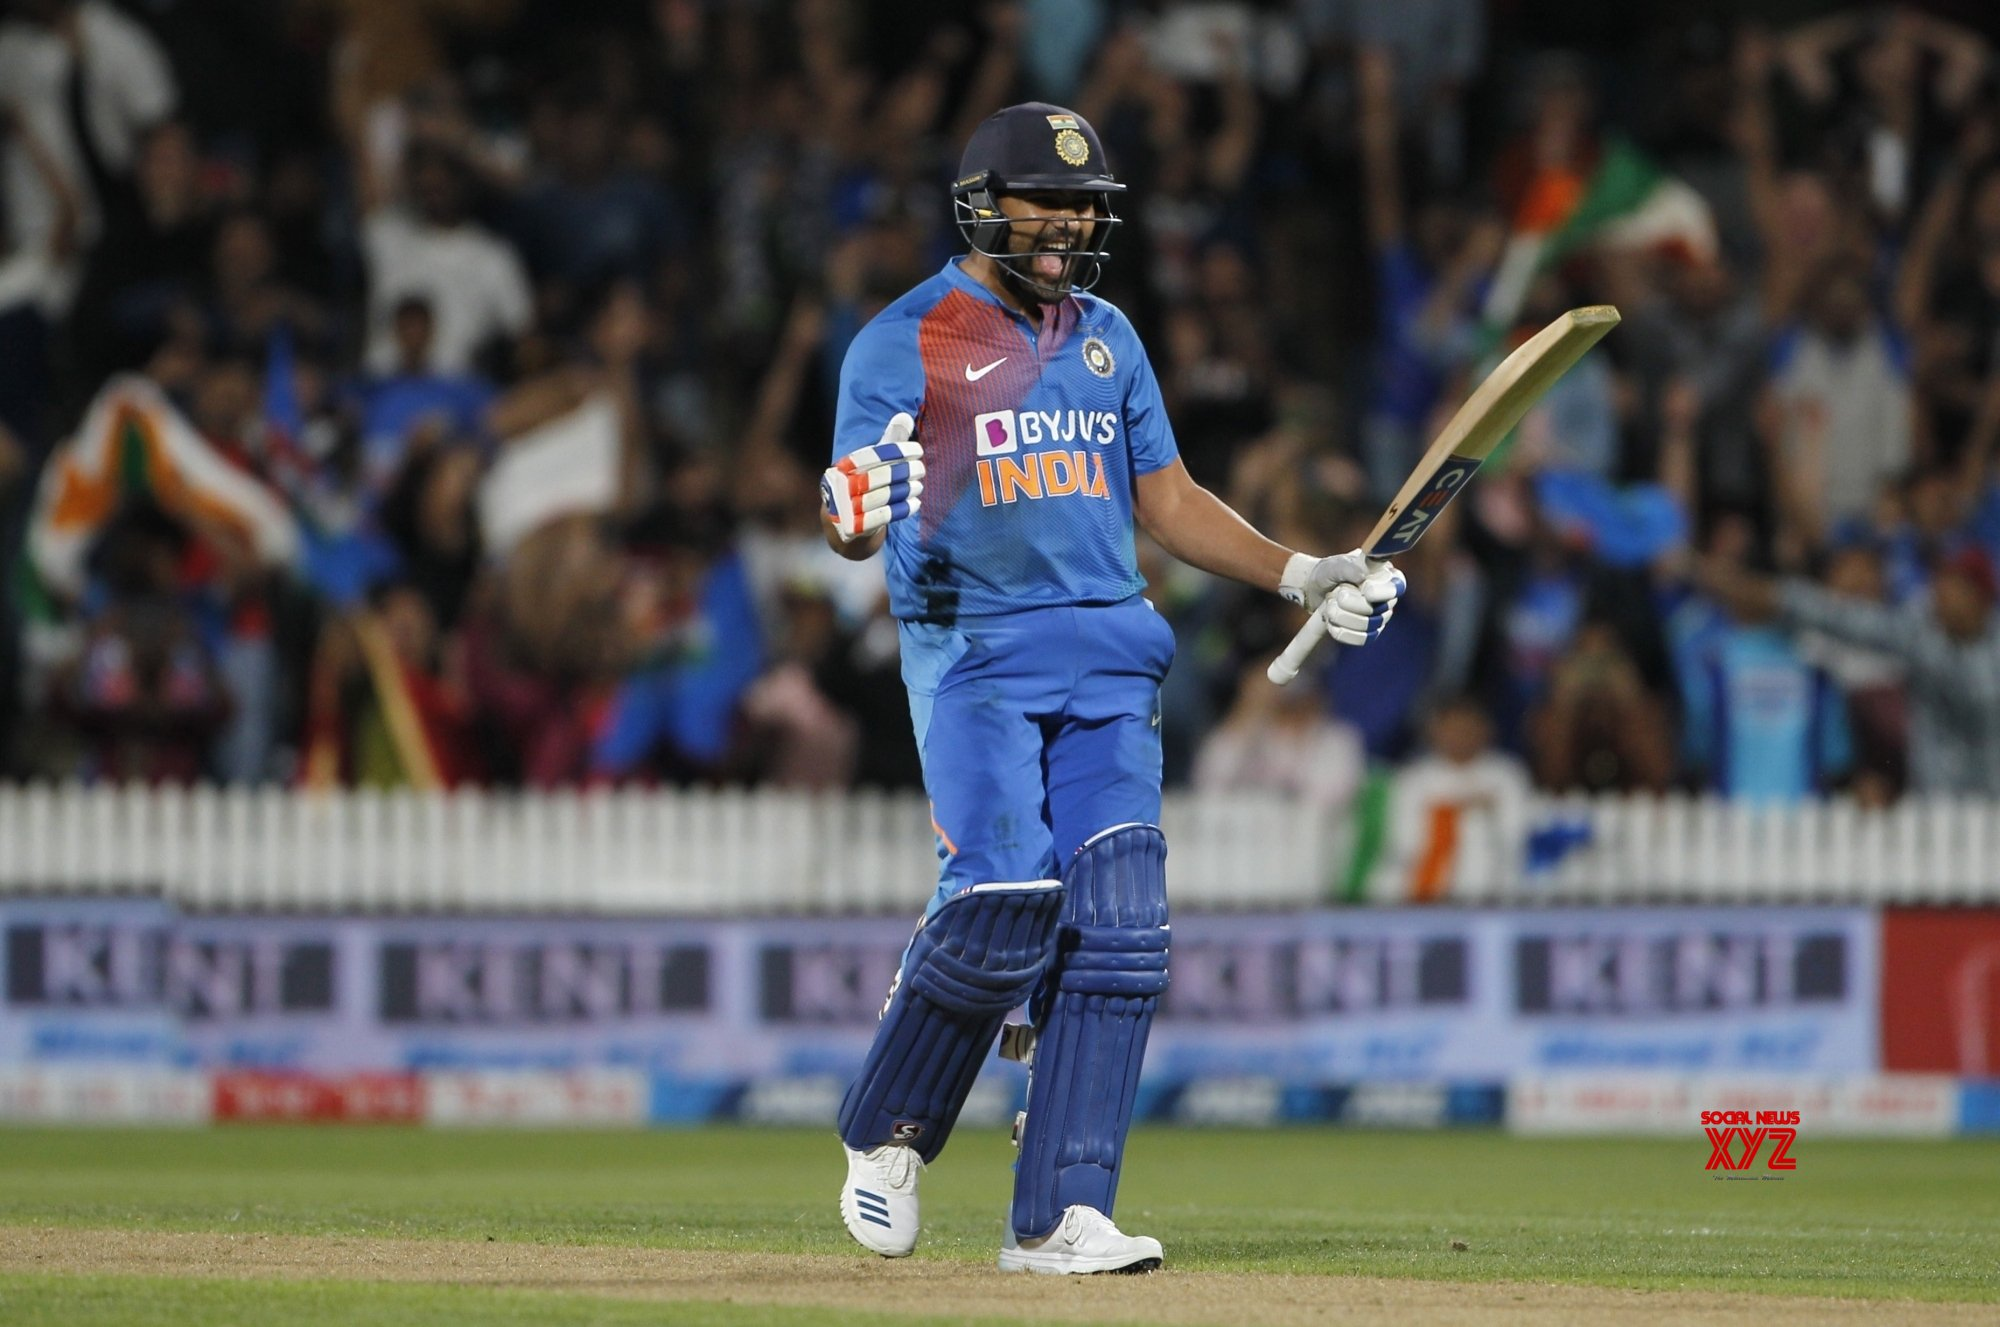 Was really itching to get back to playing cricket: Rohit